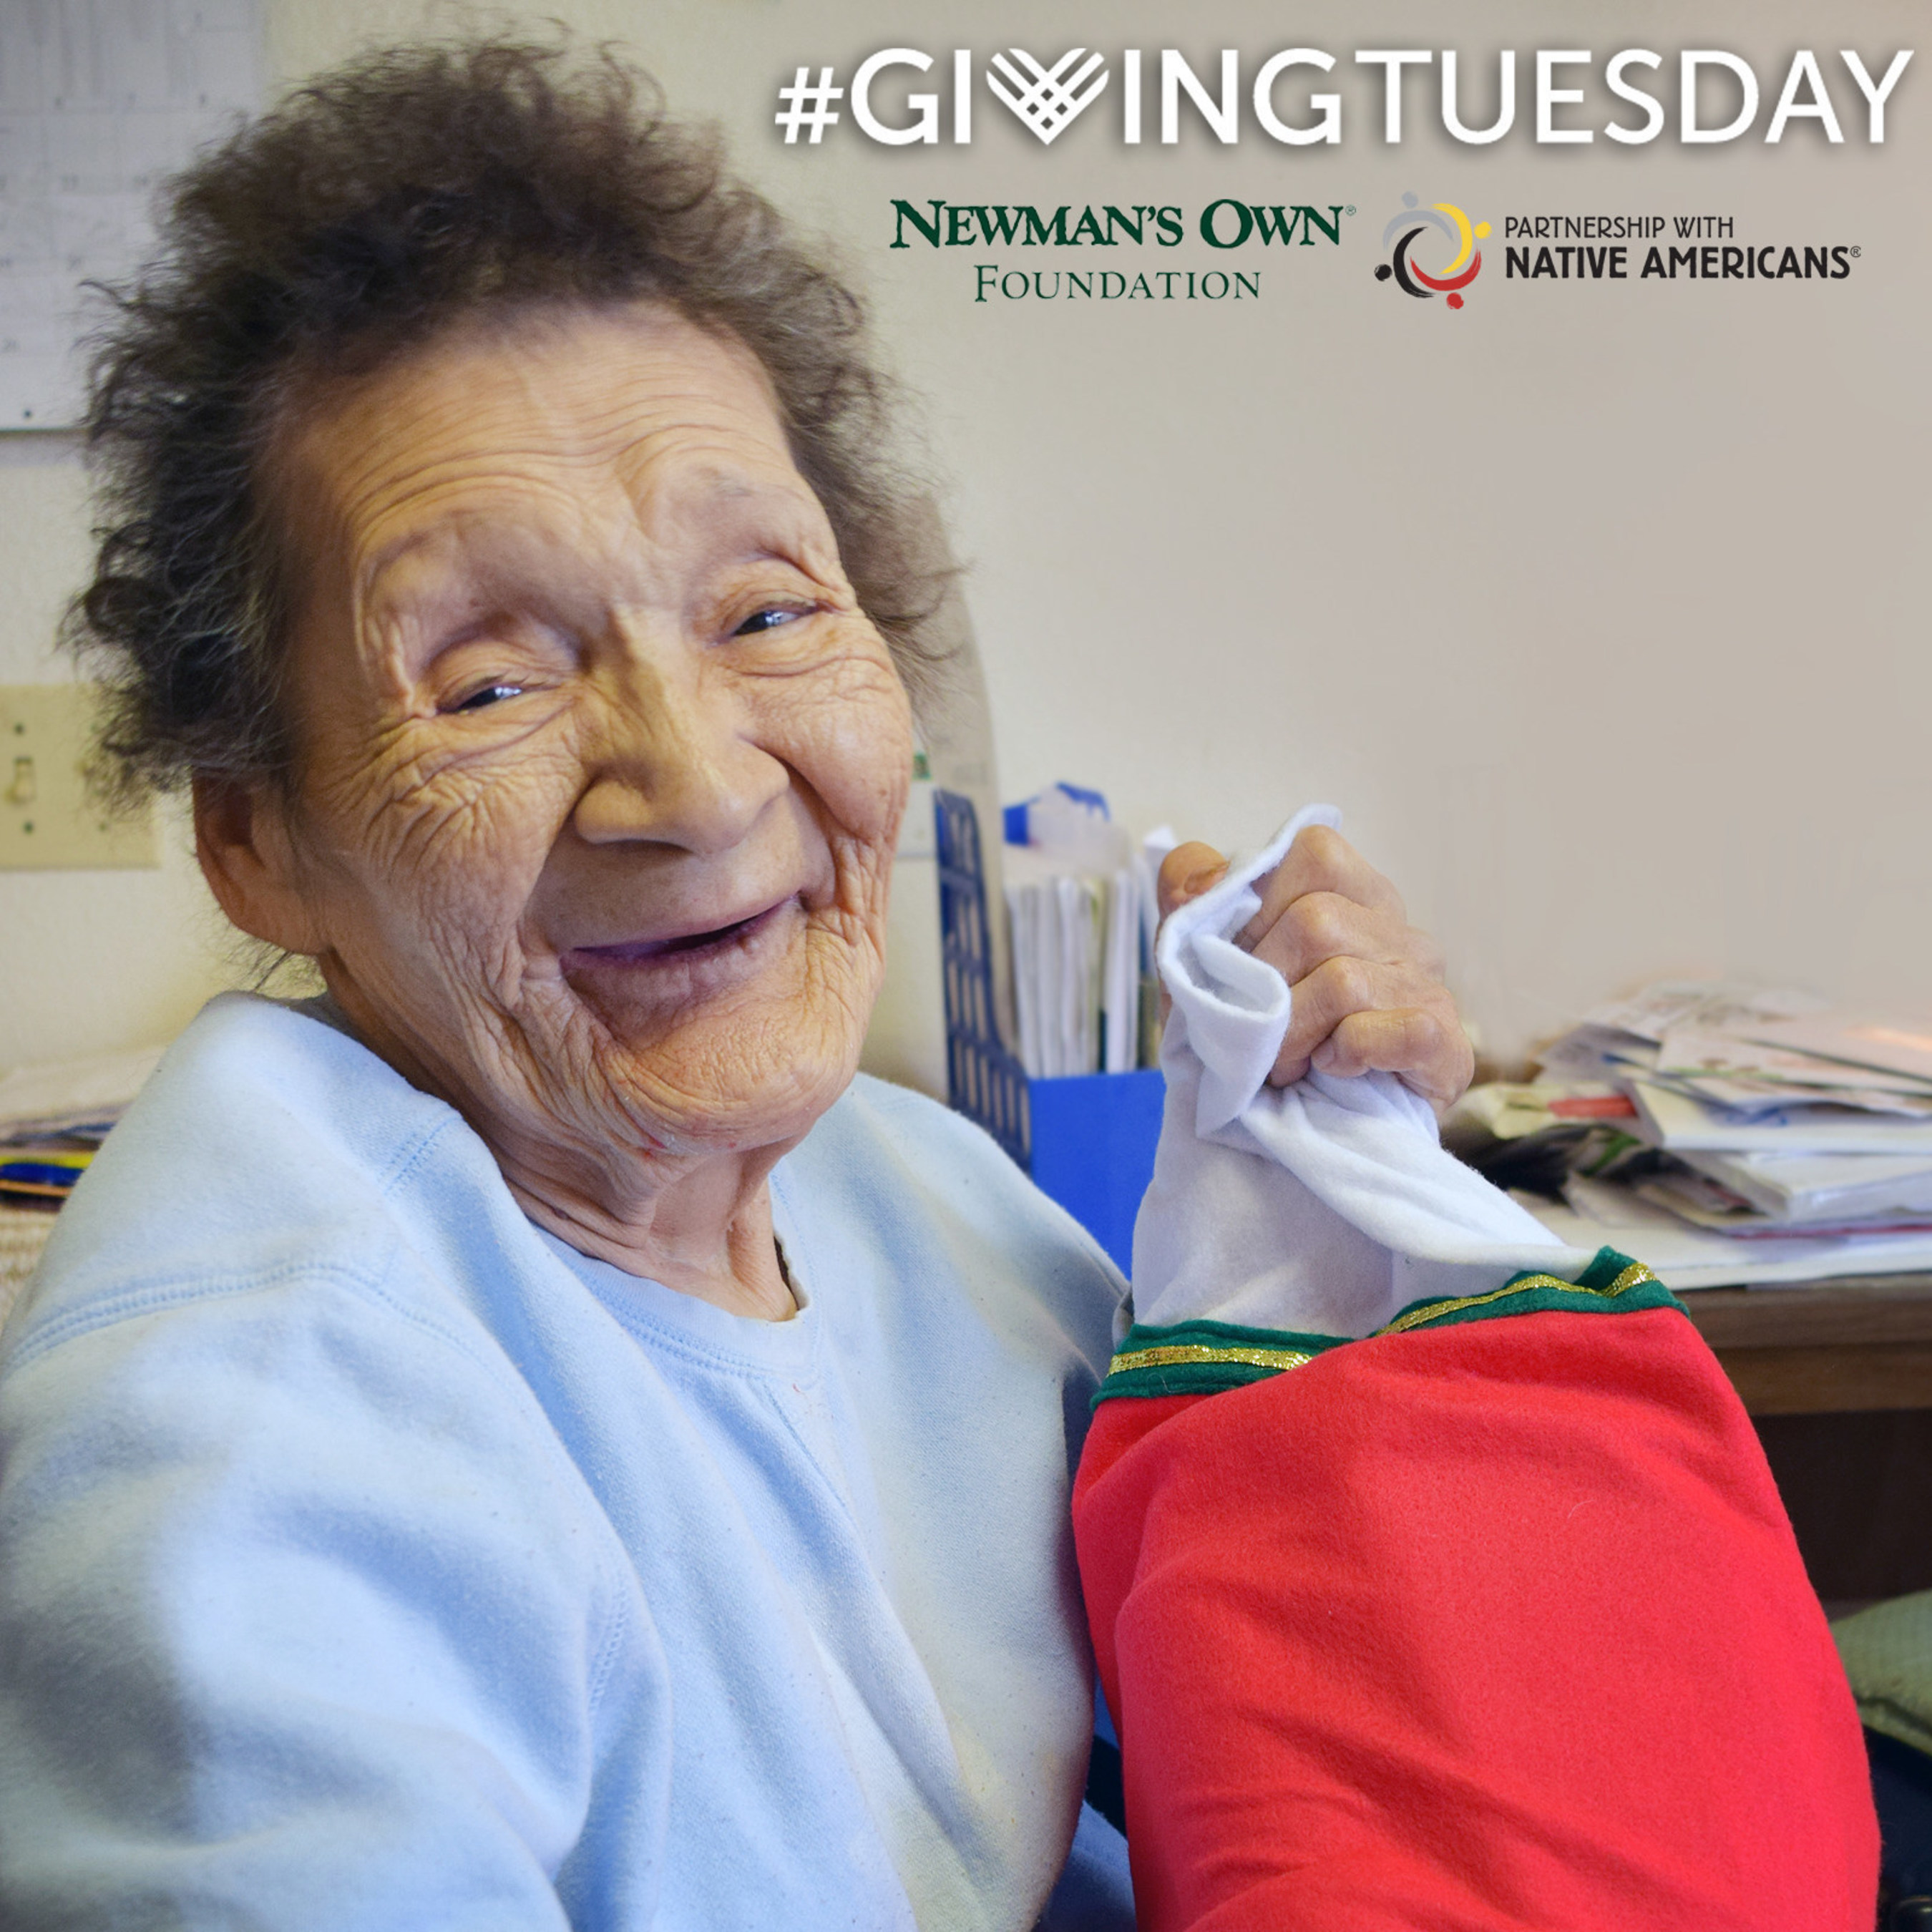 PWNA can earn up to $10,000 in matching funds for donations made through Nov. 29, as part of the Newman's Own Foundation Challenge for Giving Tuesday. PWNA supports nutritious, hot meals for Elders on remote, geographically isolated and impoverished reservations, as well as holiday services.